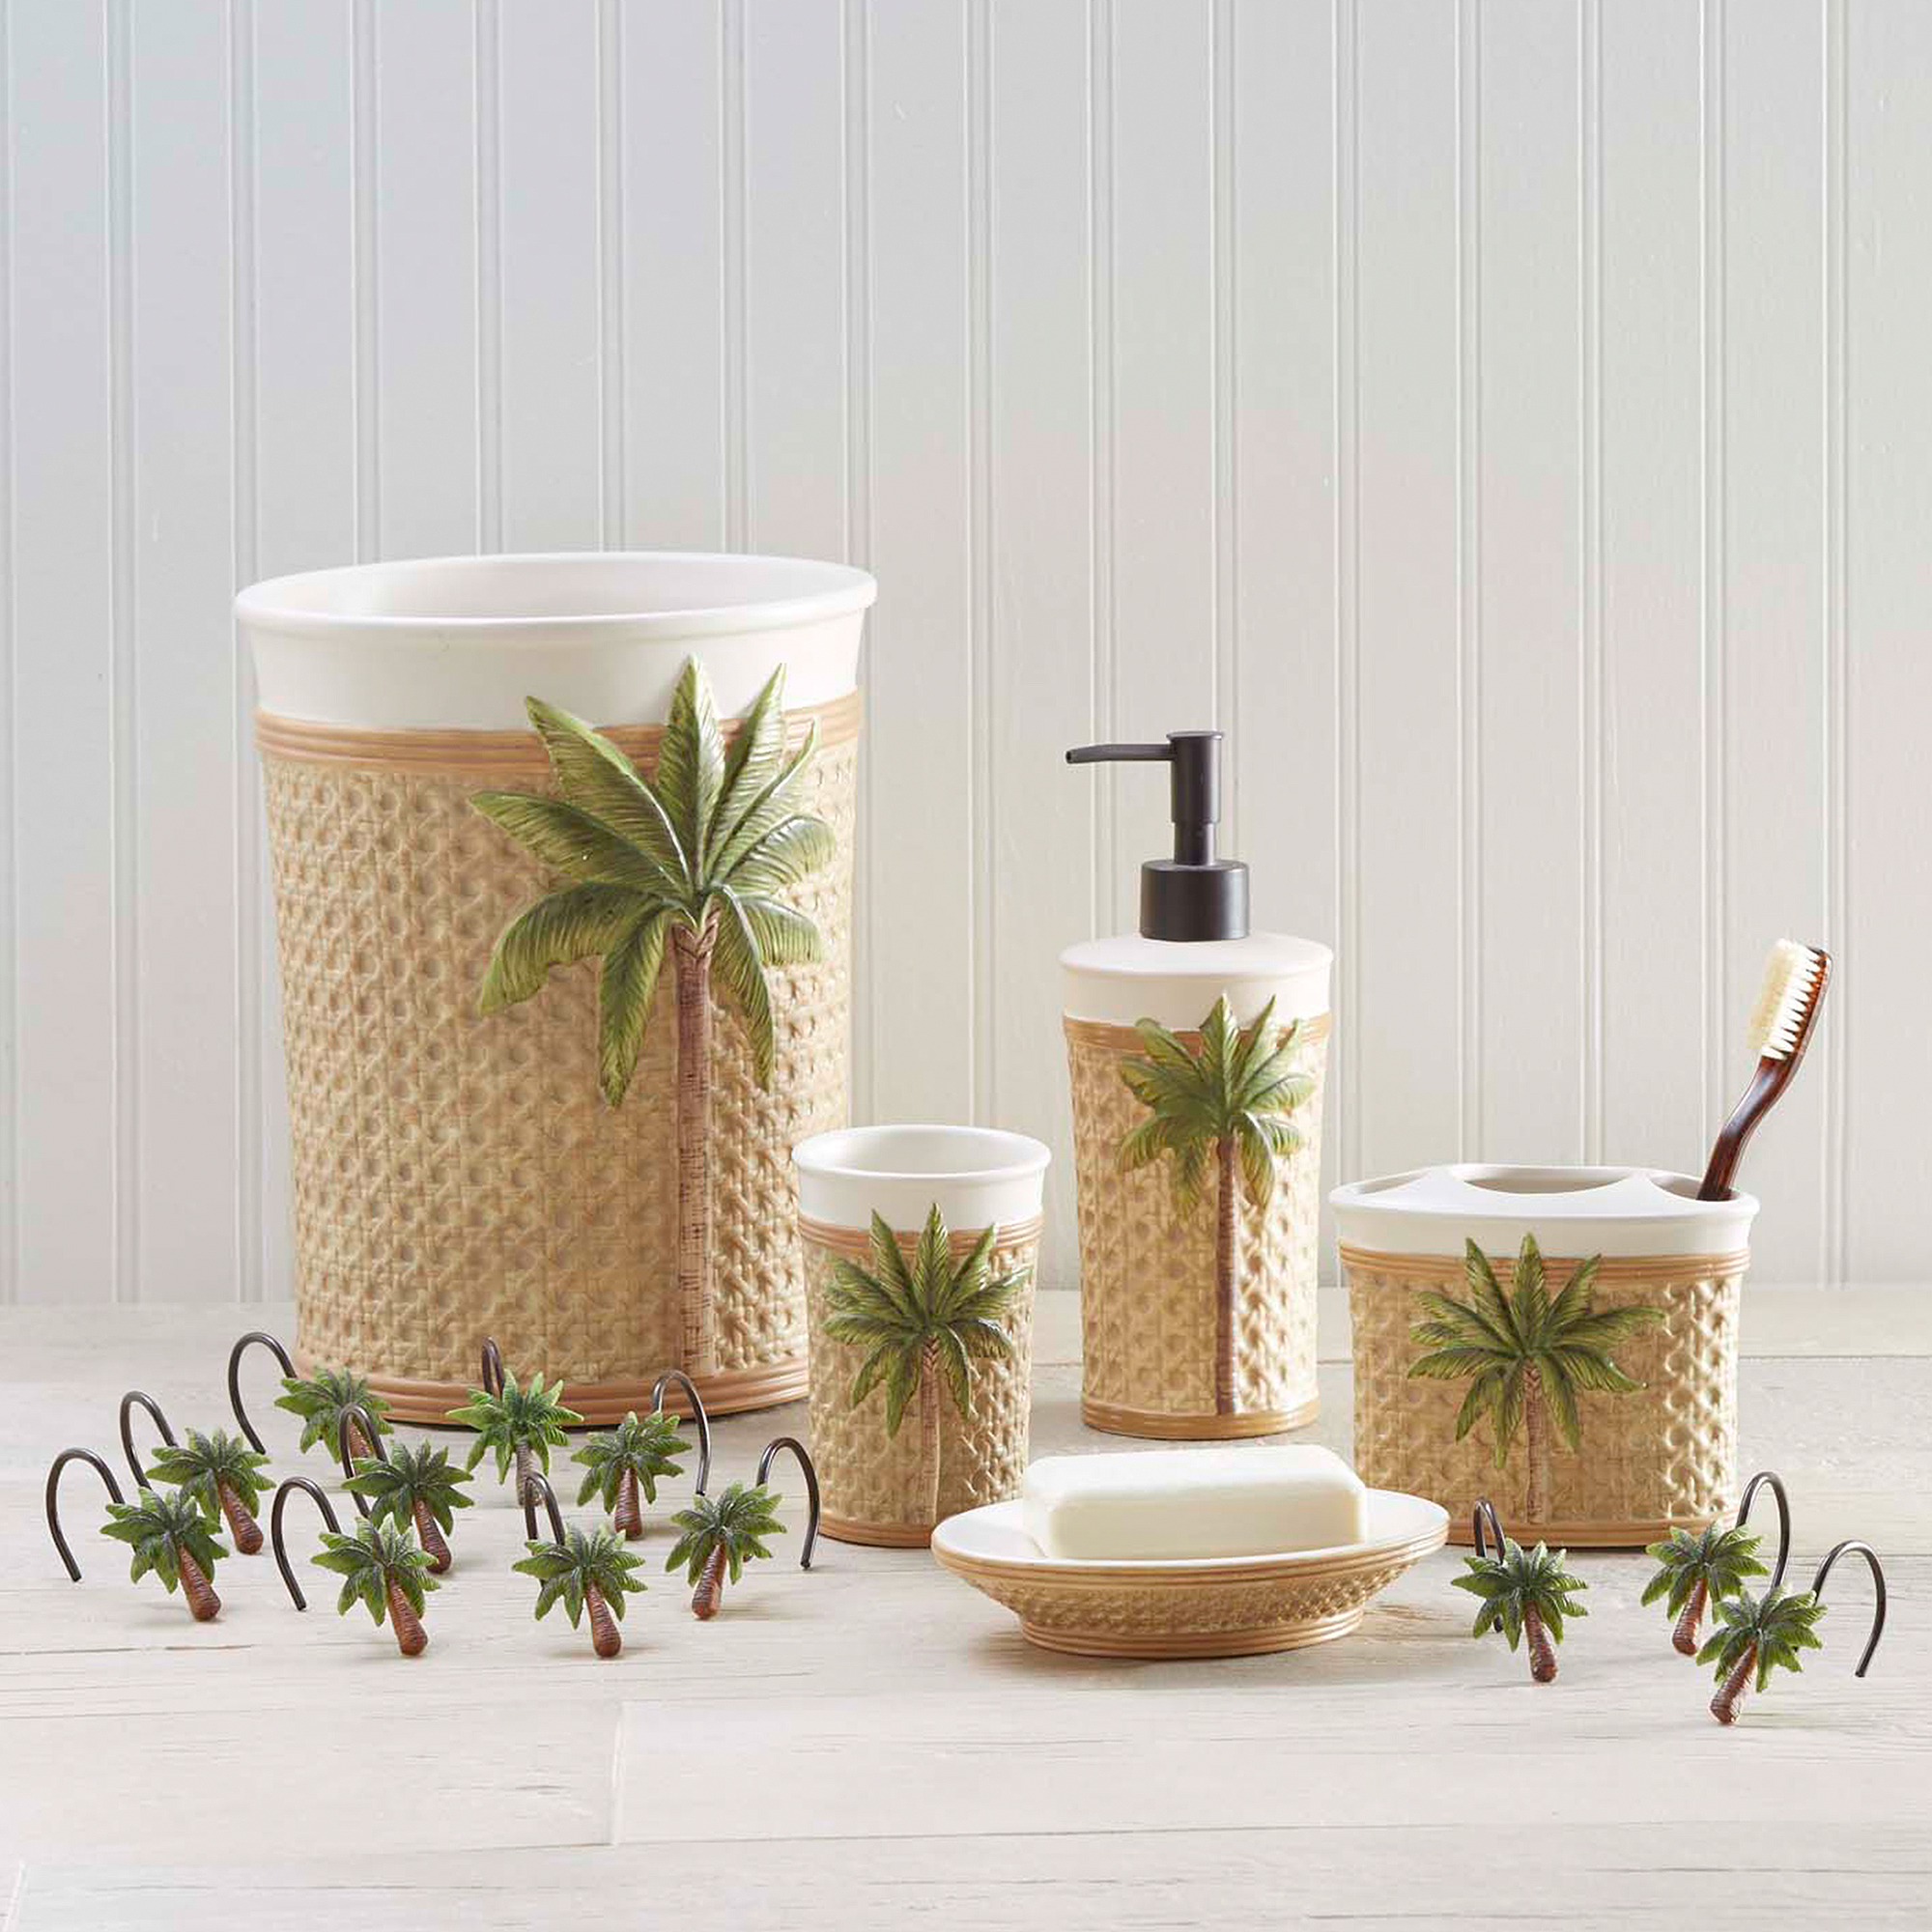 Better Homes and Gardens Palm Decorative Bath Collection - Tumbler